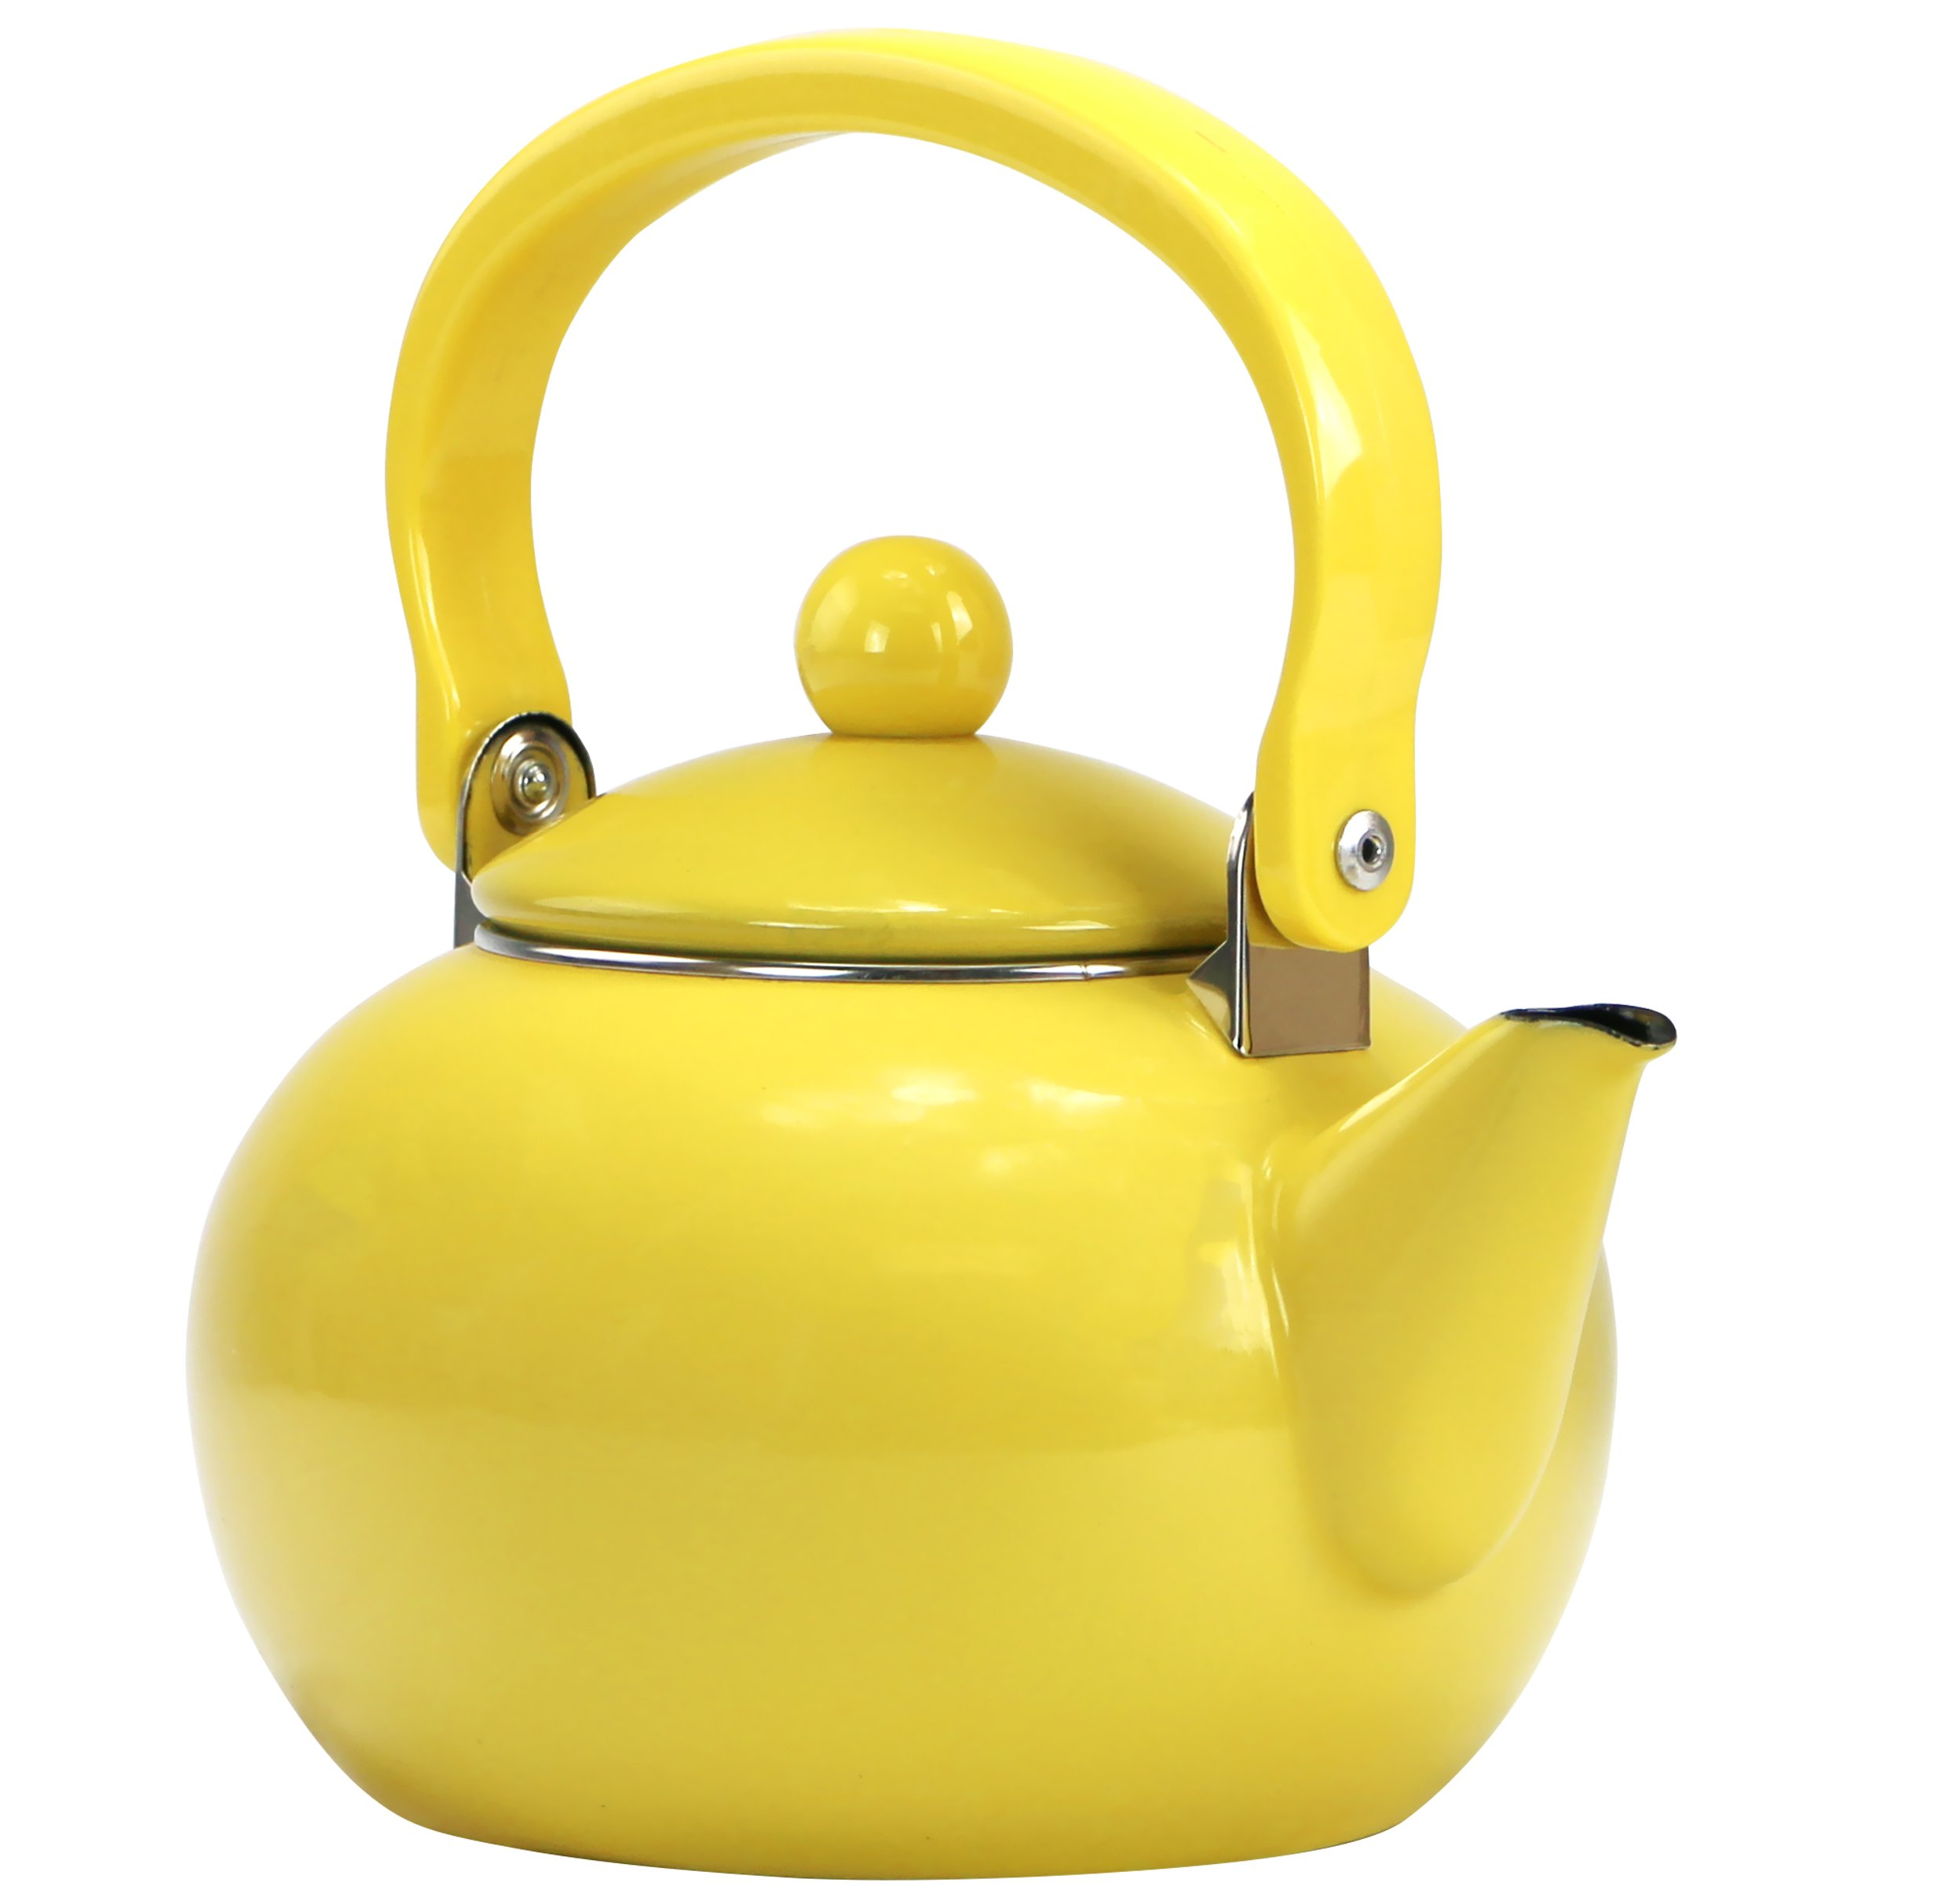 Calypso Basics by Reston Lloyd 2-Quart Enamel-on-Steel Tea Kettle, Lemon Yellow by Reston Lloyd